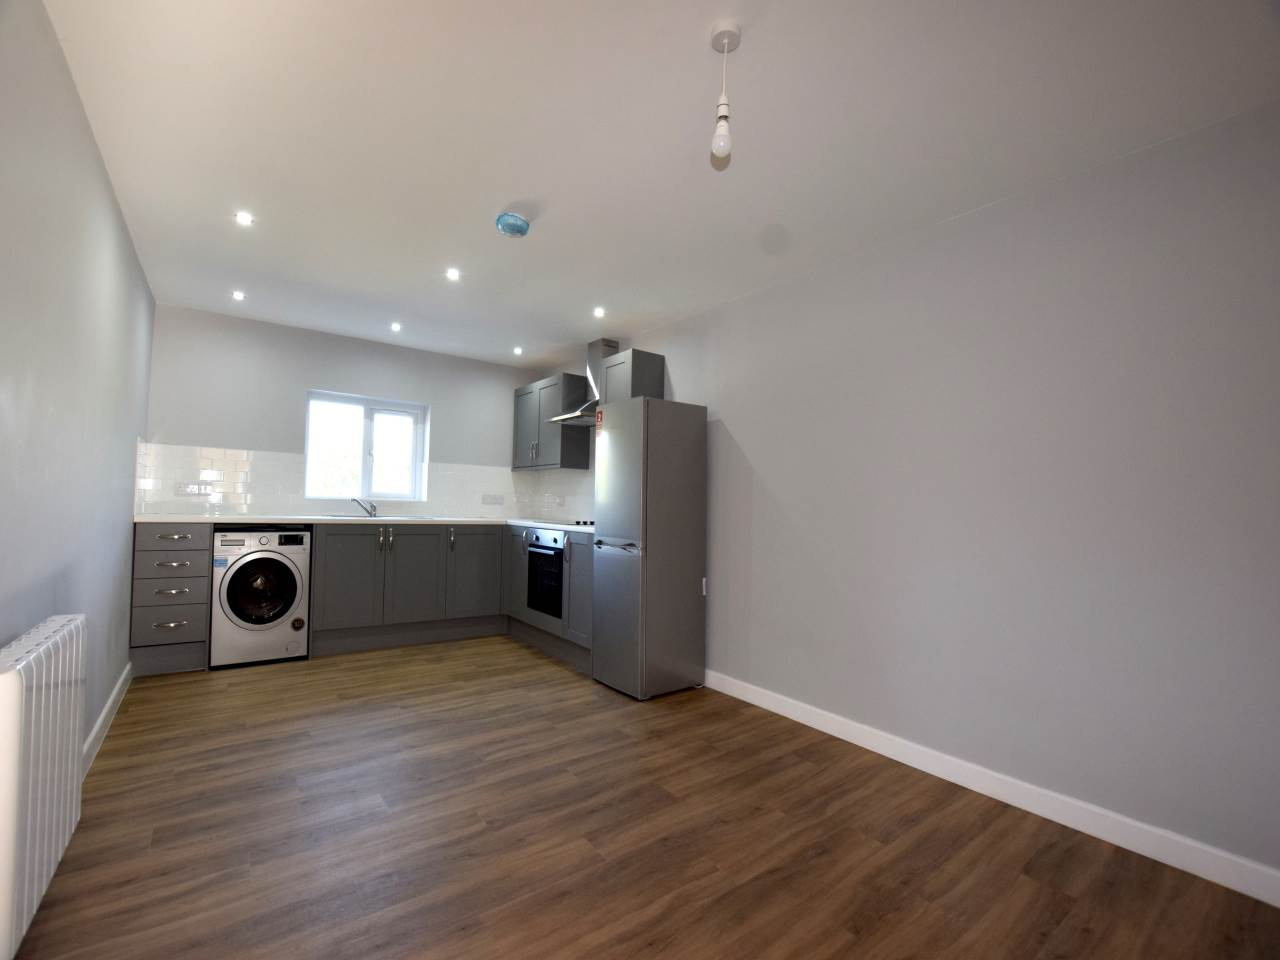 2 bed flat to rent in Central Stores Flats, Talybont  - Property Image 2